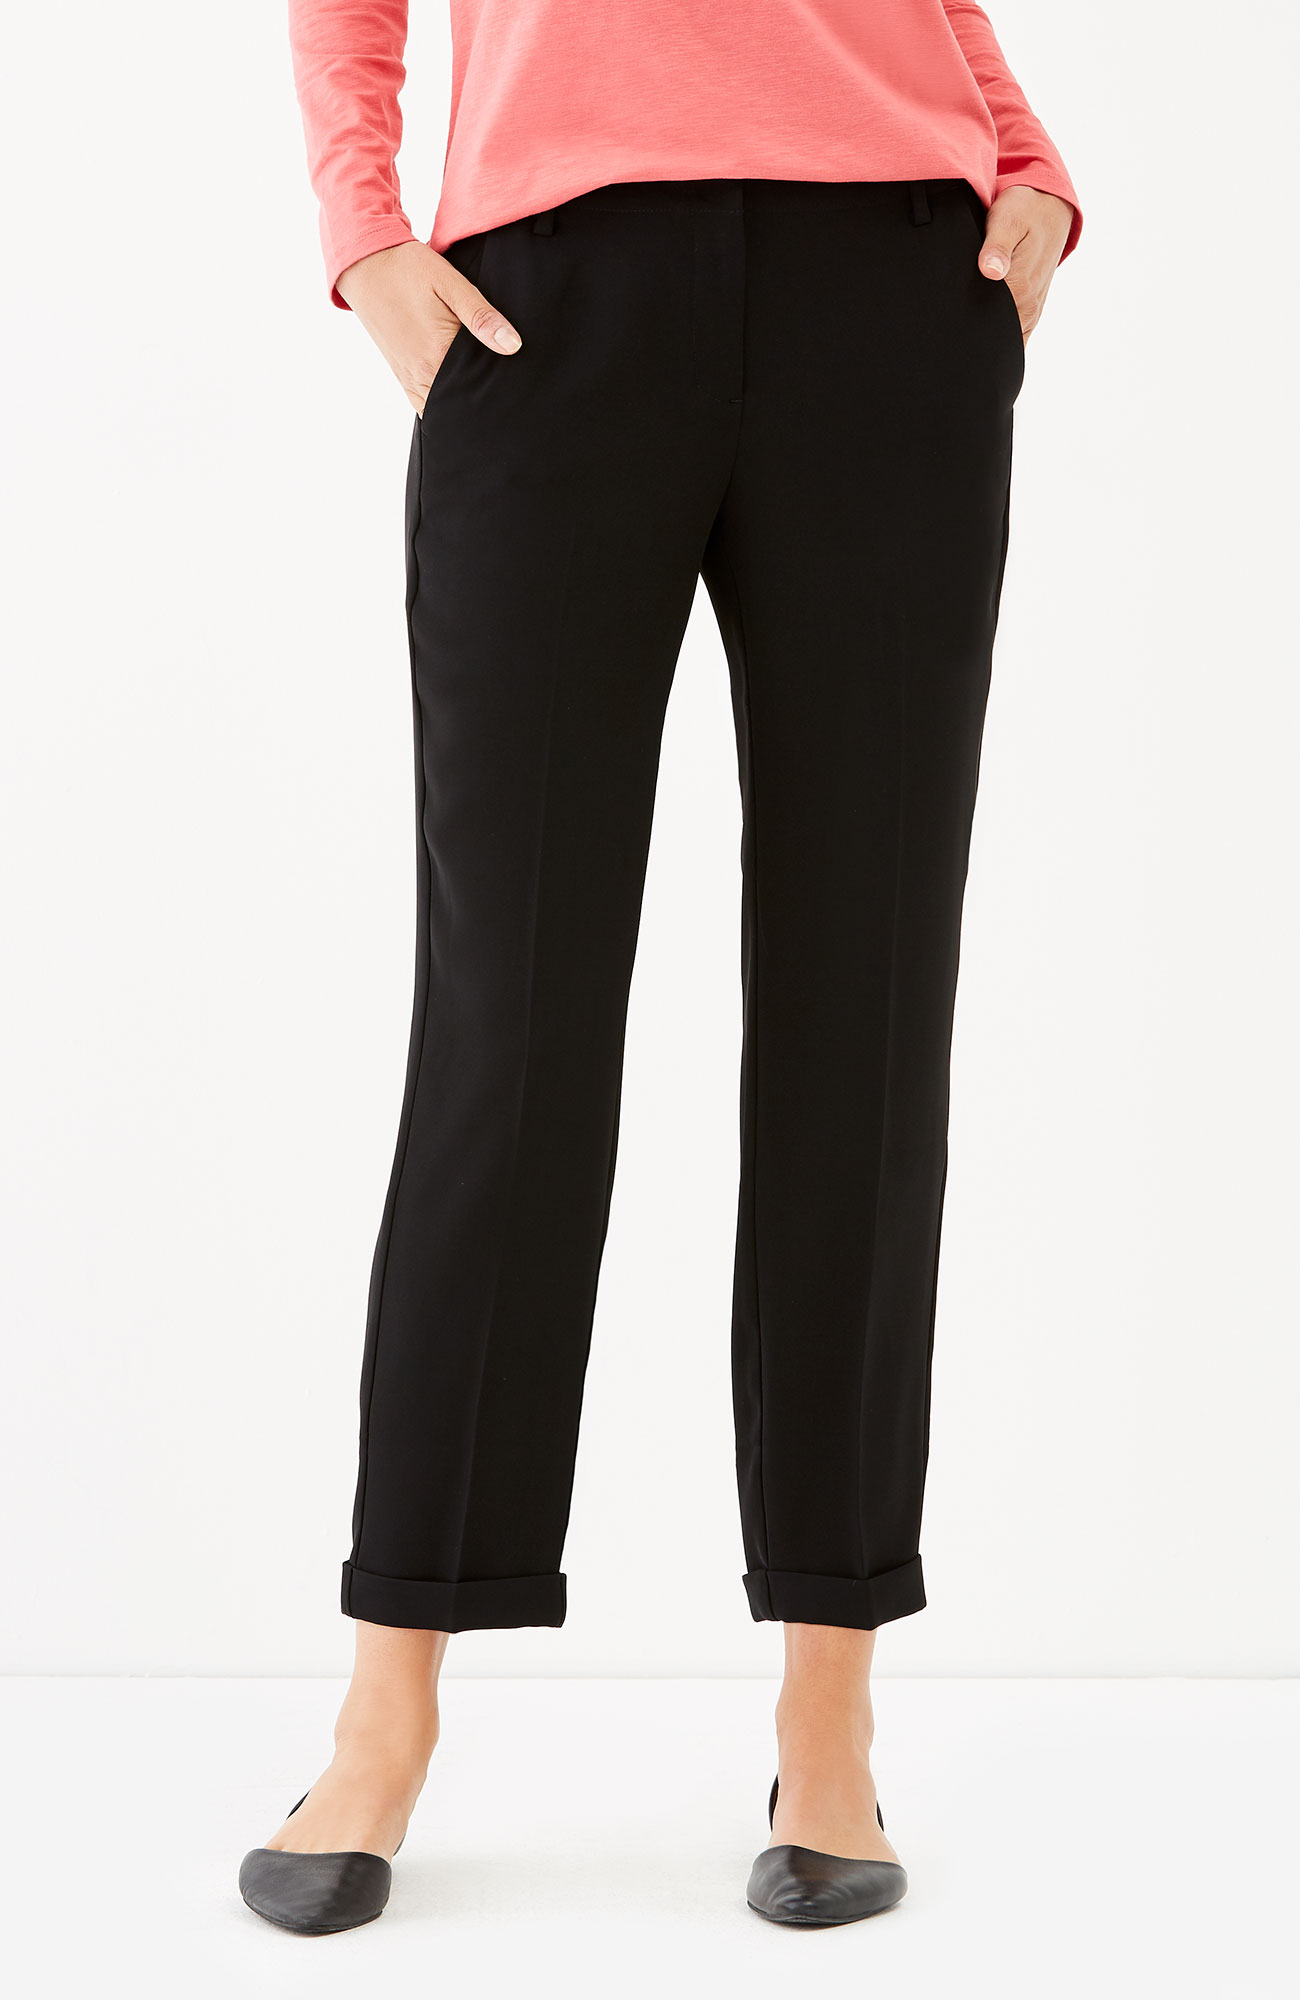 soft-drape cuffed pants